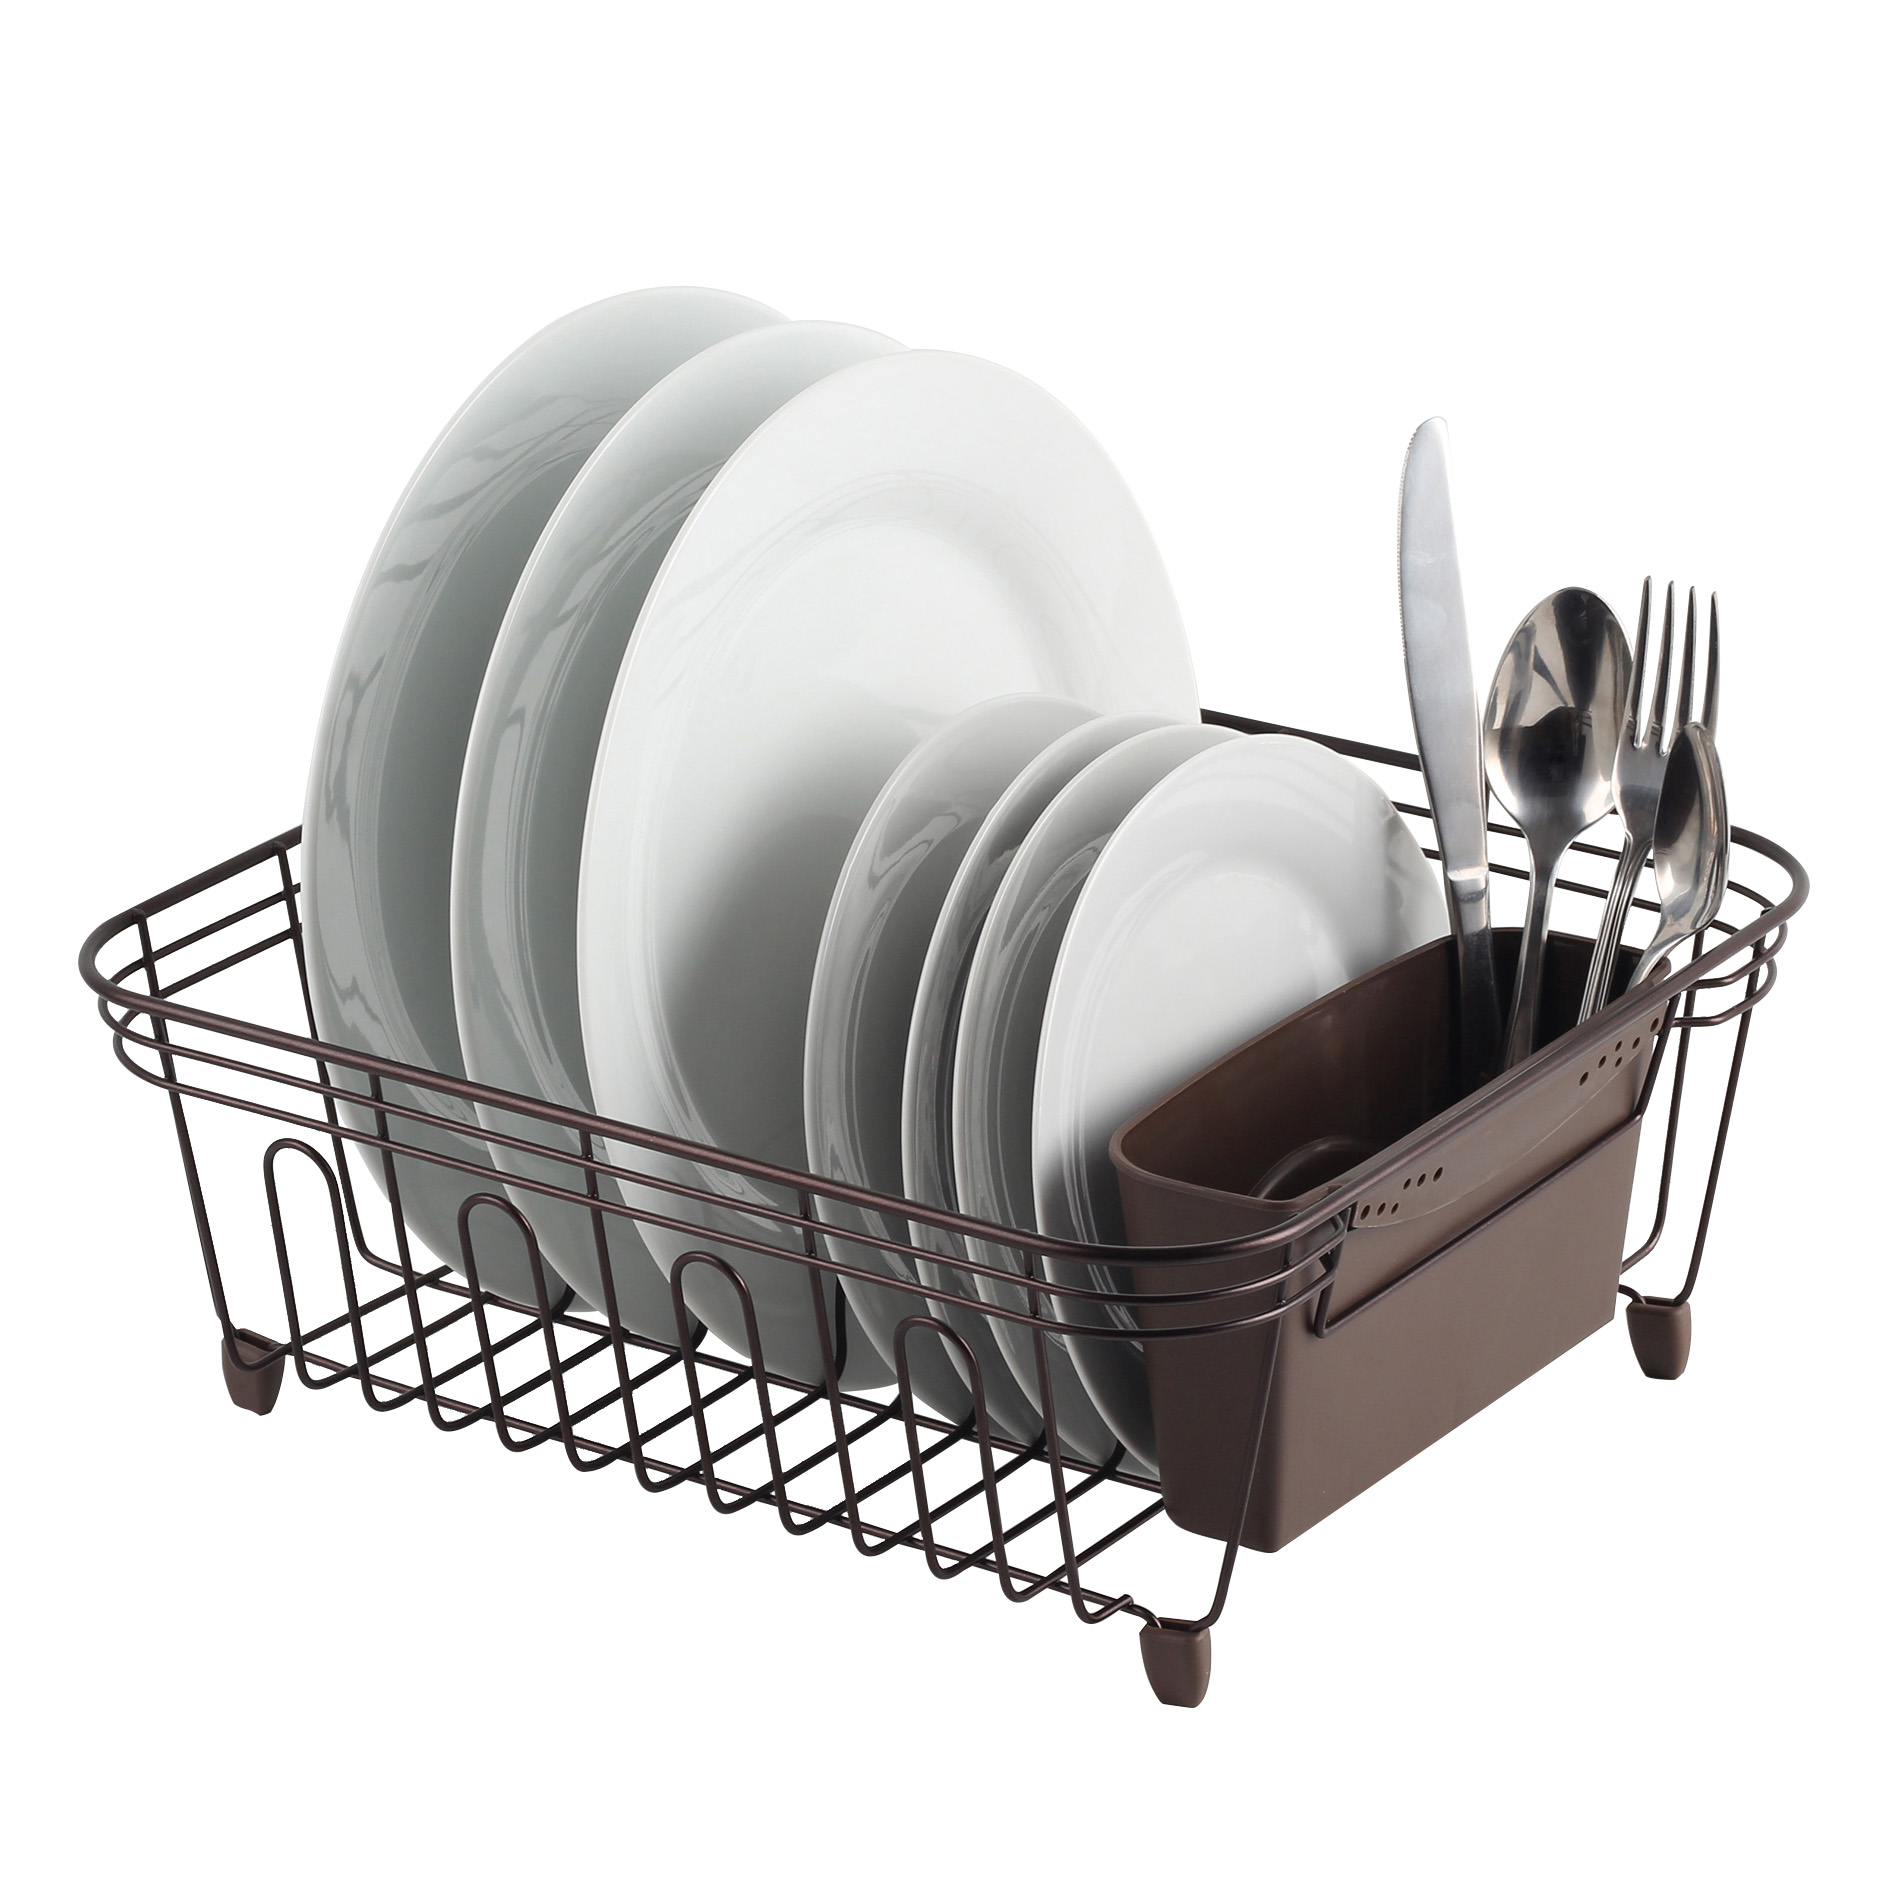 Real Home Innovations Deluxe Small Dish Drainer Oil Bronze Walmart Com Walmart Com